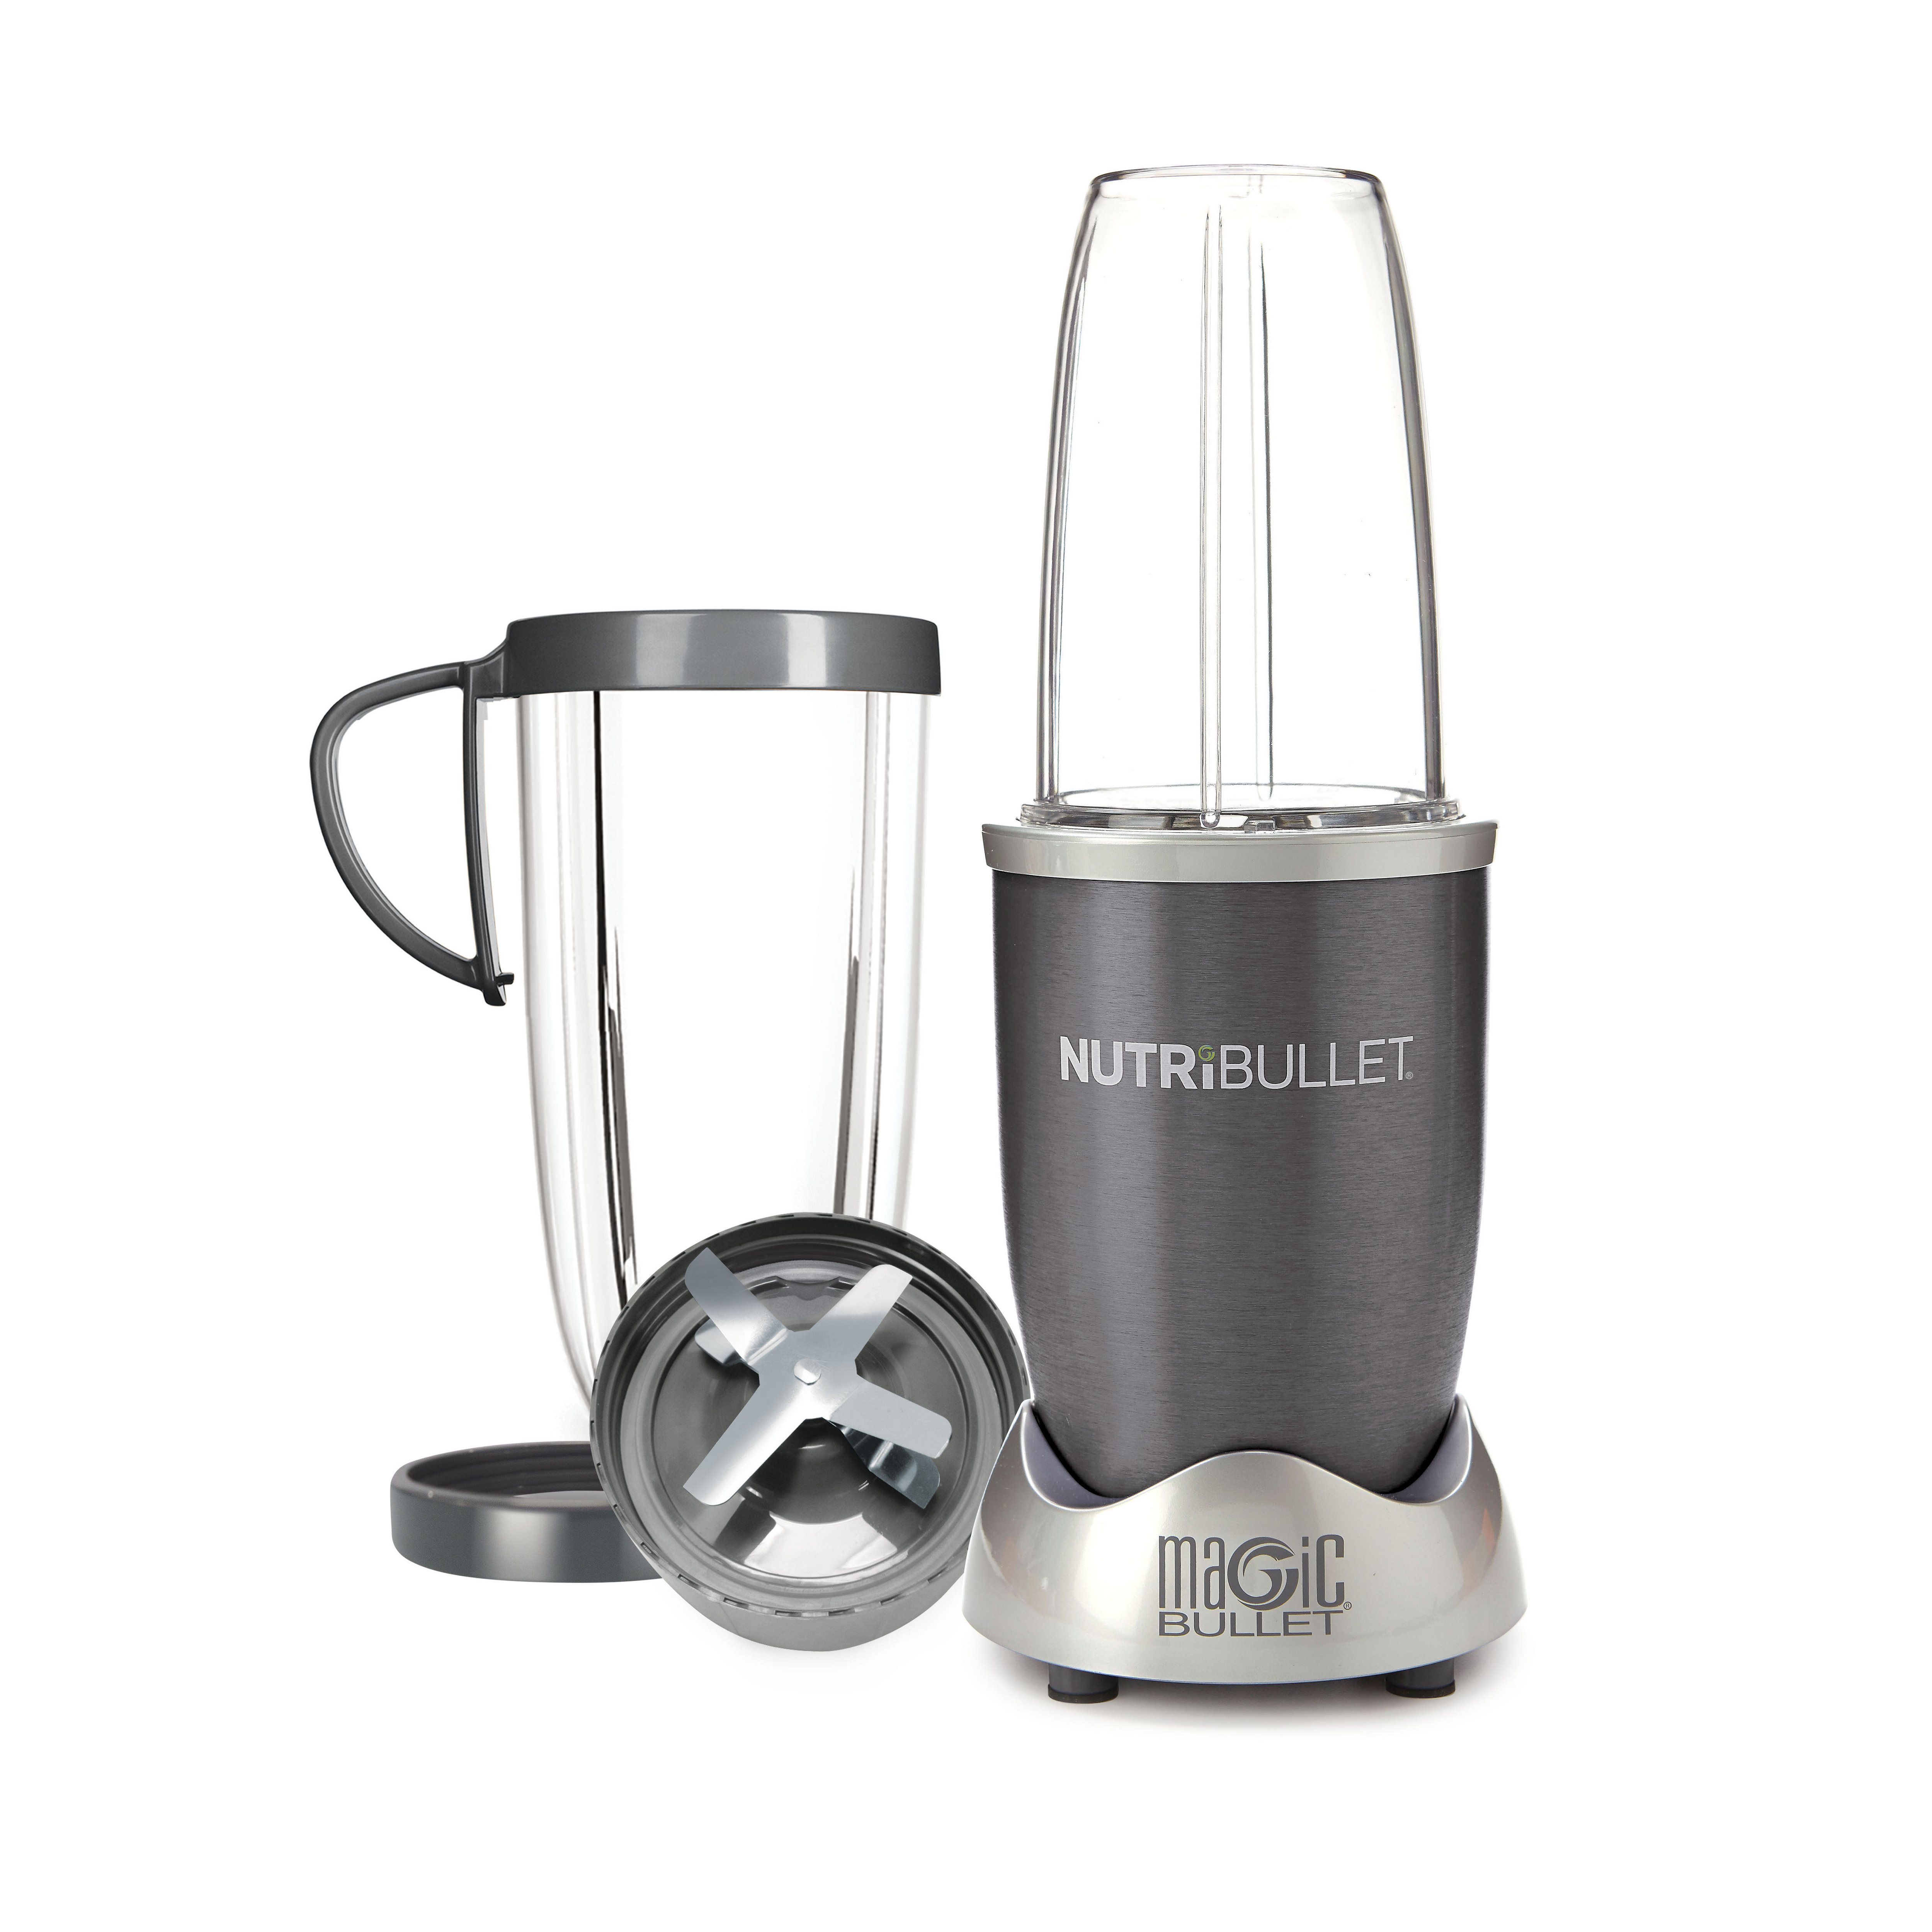 Blenders and Mixers - Shop HEB Everyday Low Prices Online